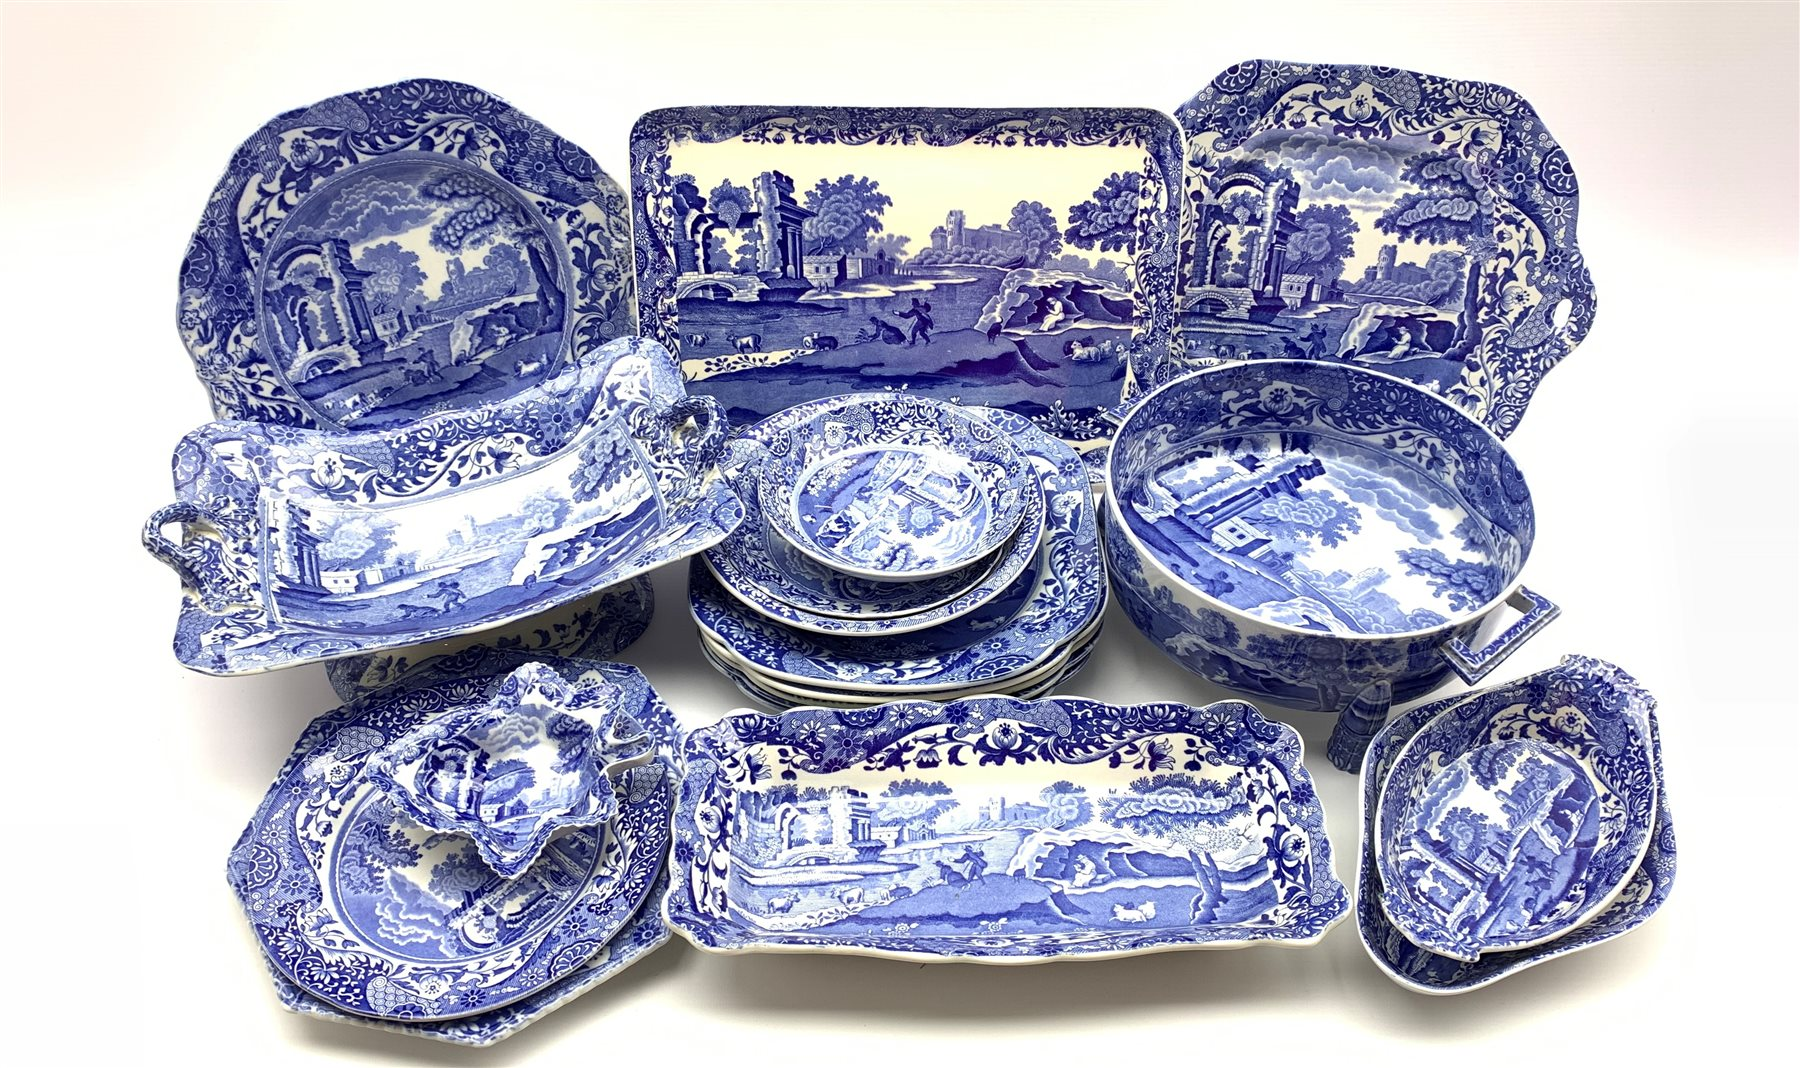 Copeland Spode's Italian pattern blue and white two handled fruit dish, two handled serving bowl on